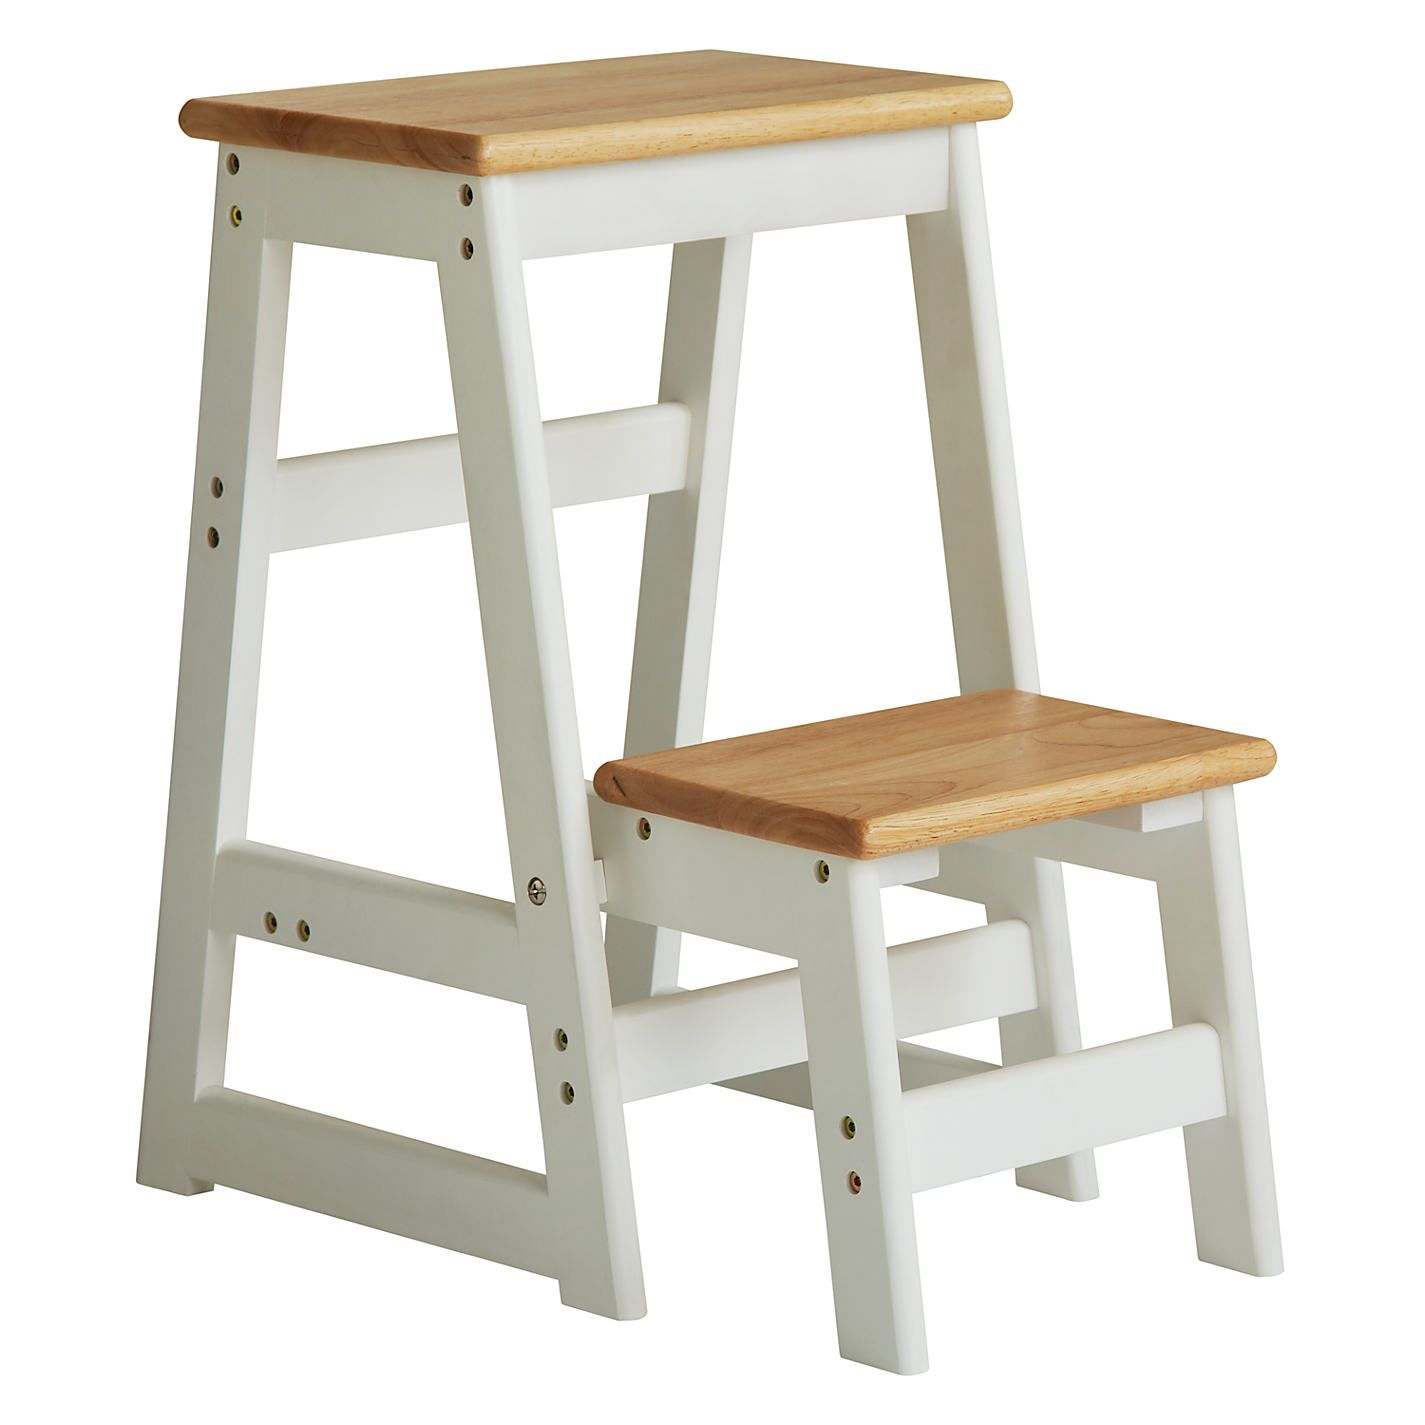 Awesome Kitchen Stool Step Ladder